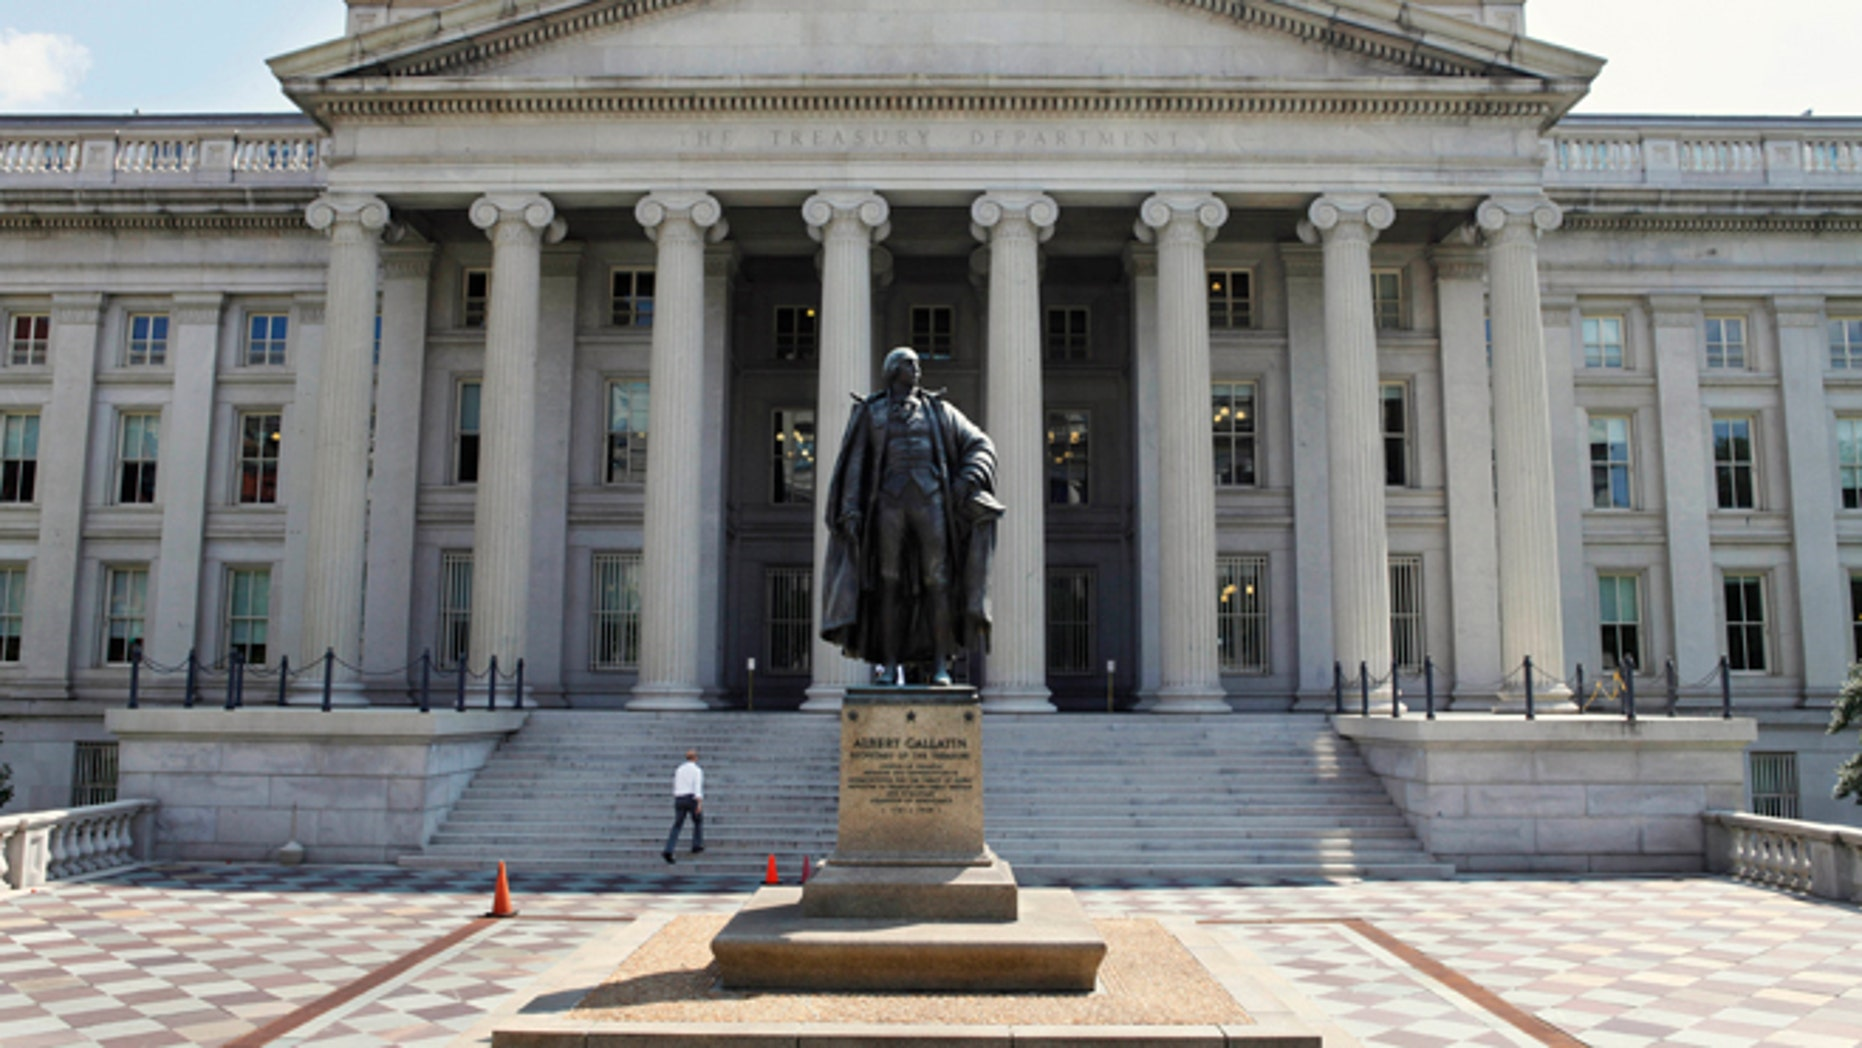 Aug. 8, 2011: A statue of former Treasury Secretary Albert Gallatin stands in front of the Department of the Treasury in Washington.